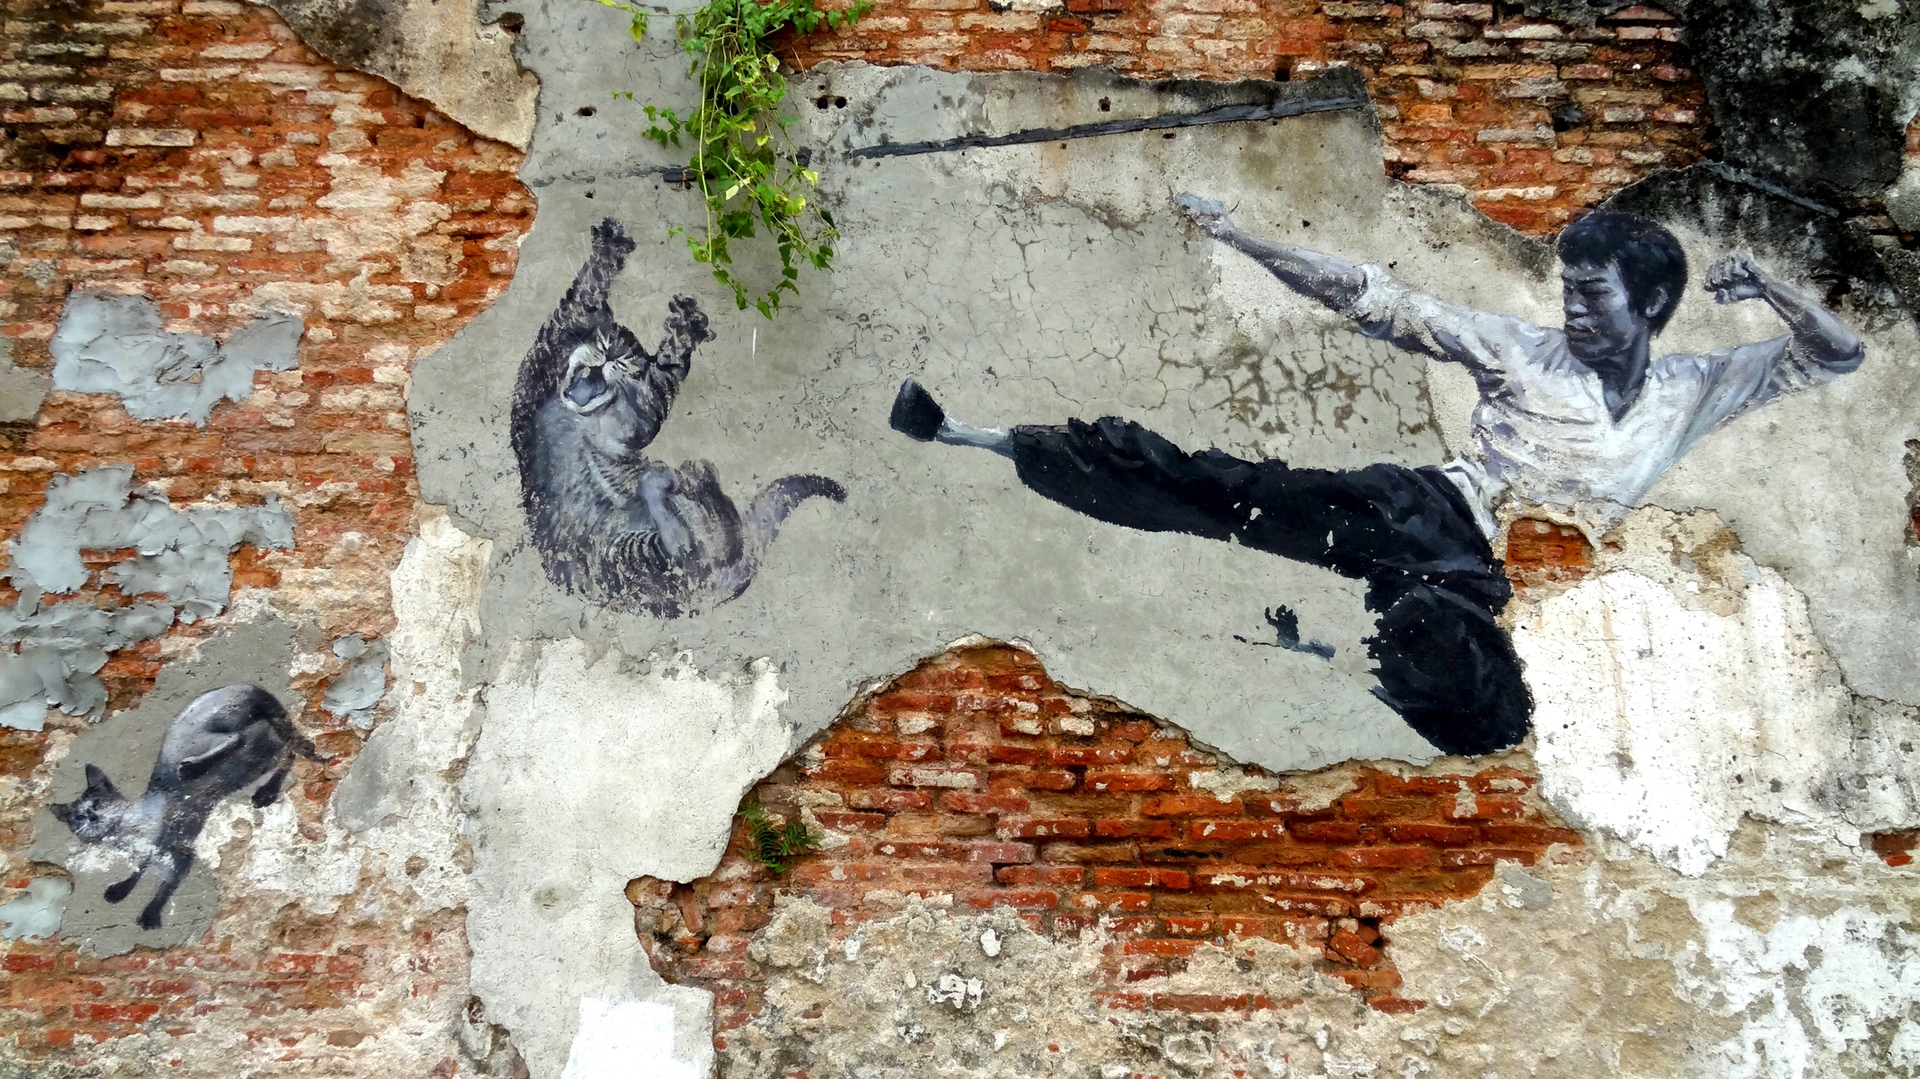 Bruce Lee Cat Mural (2013) by ASA - Pako Campo